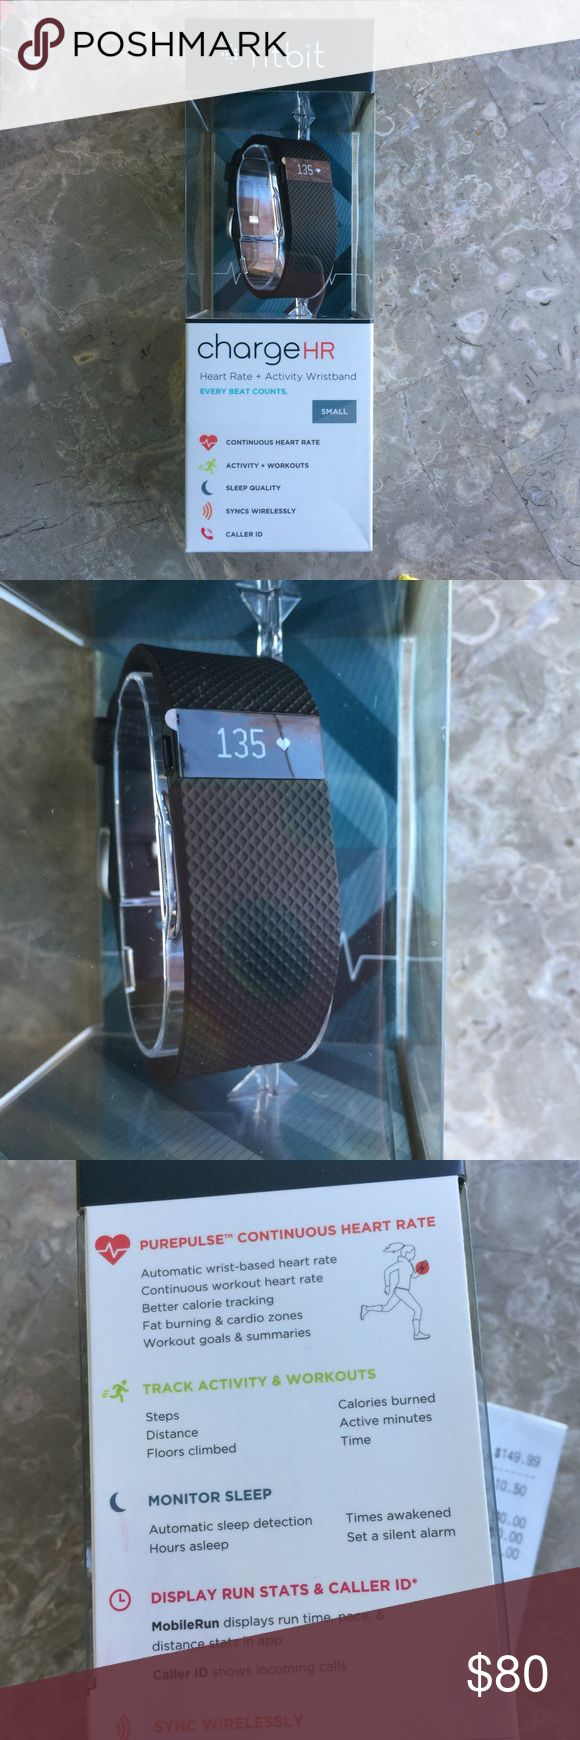 Fitbit Charge HR Small Black Watch & Activity Band Fitbit Charge HR Small Black Watch, Heart Rate & Activity Wrist Band. NIB. Never been used!!! Paid $149.99 + $10.50 tax!! Can be yours for much less!!! fitbit Accessories Watches